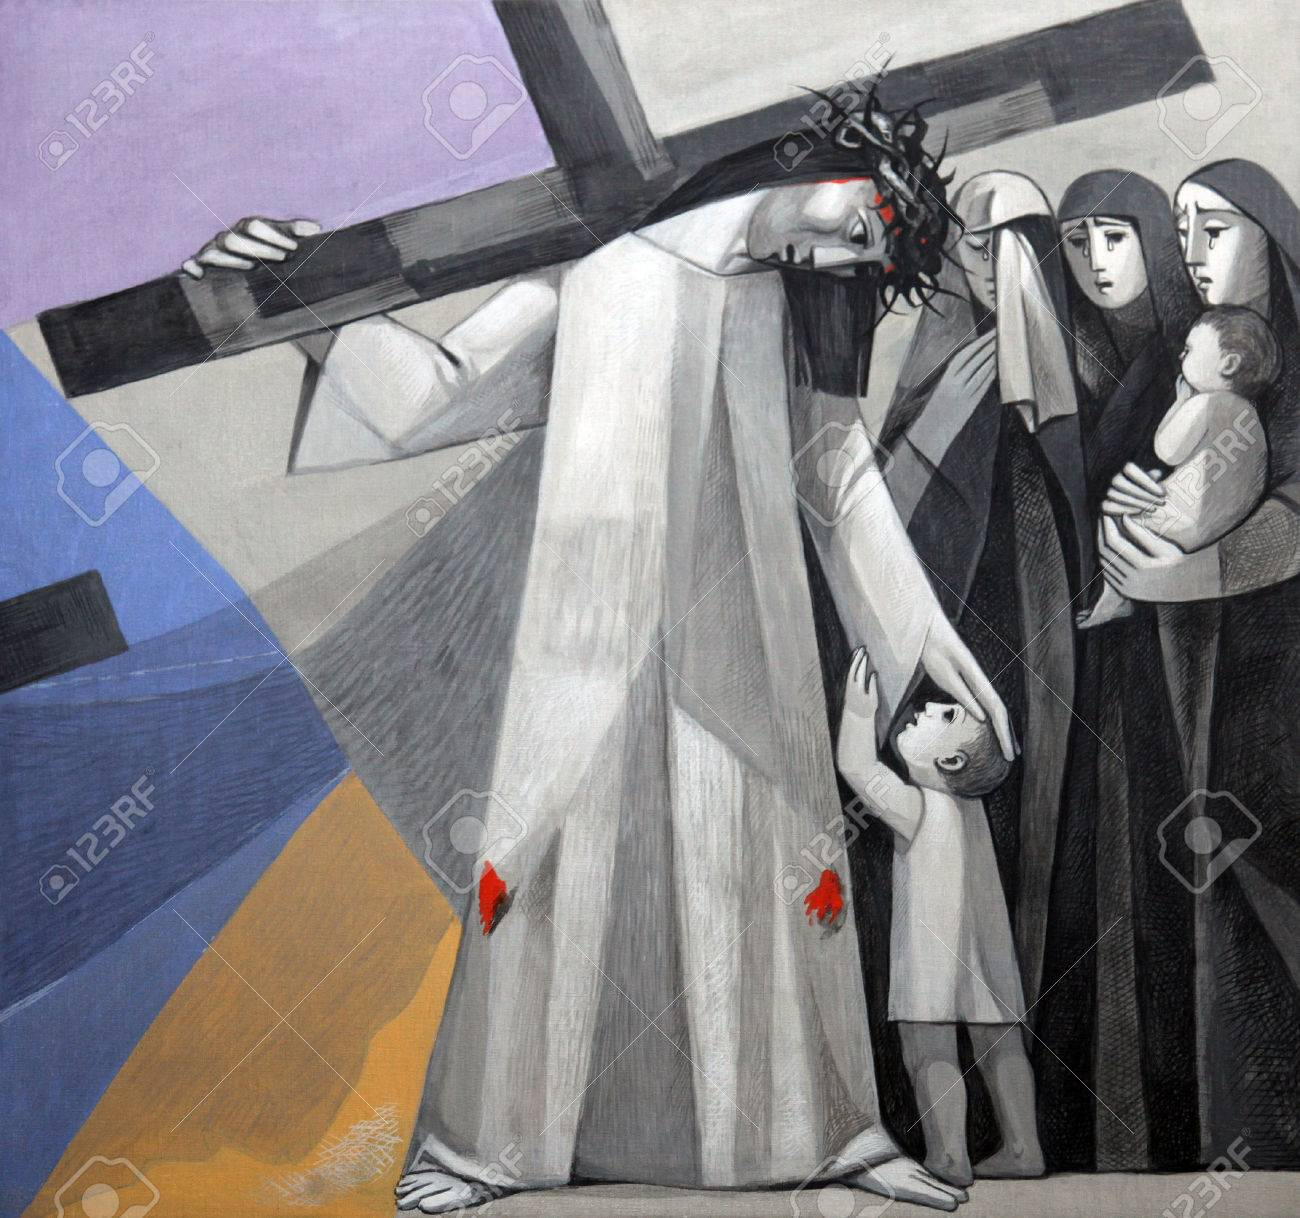 8th Stations of the Cross, Jesus meets the daughters of Jerusalem in the Church of the Holy Trinity in the Bavarian village of Gemunden am Main, in the Diocese of Wurzburg Stock Photo - 27851261